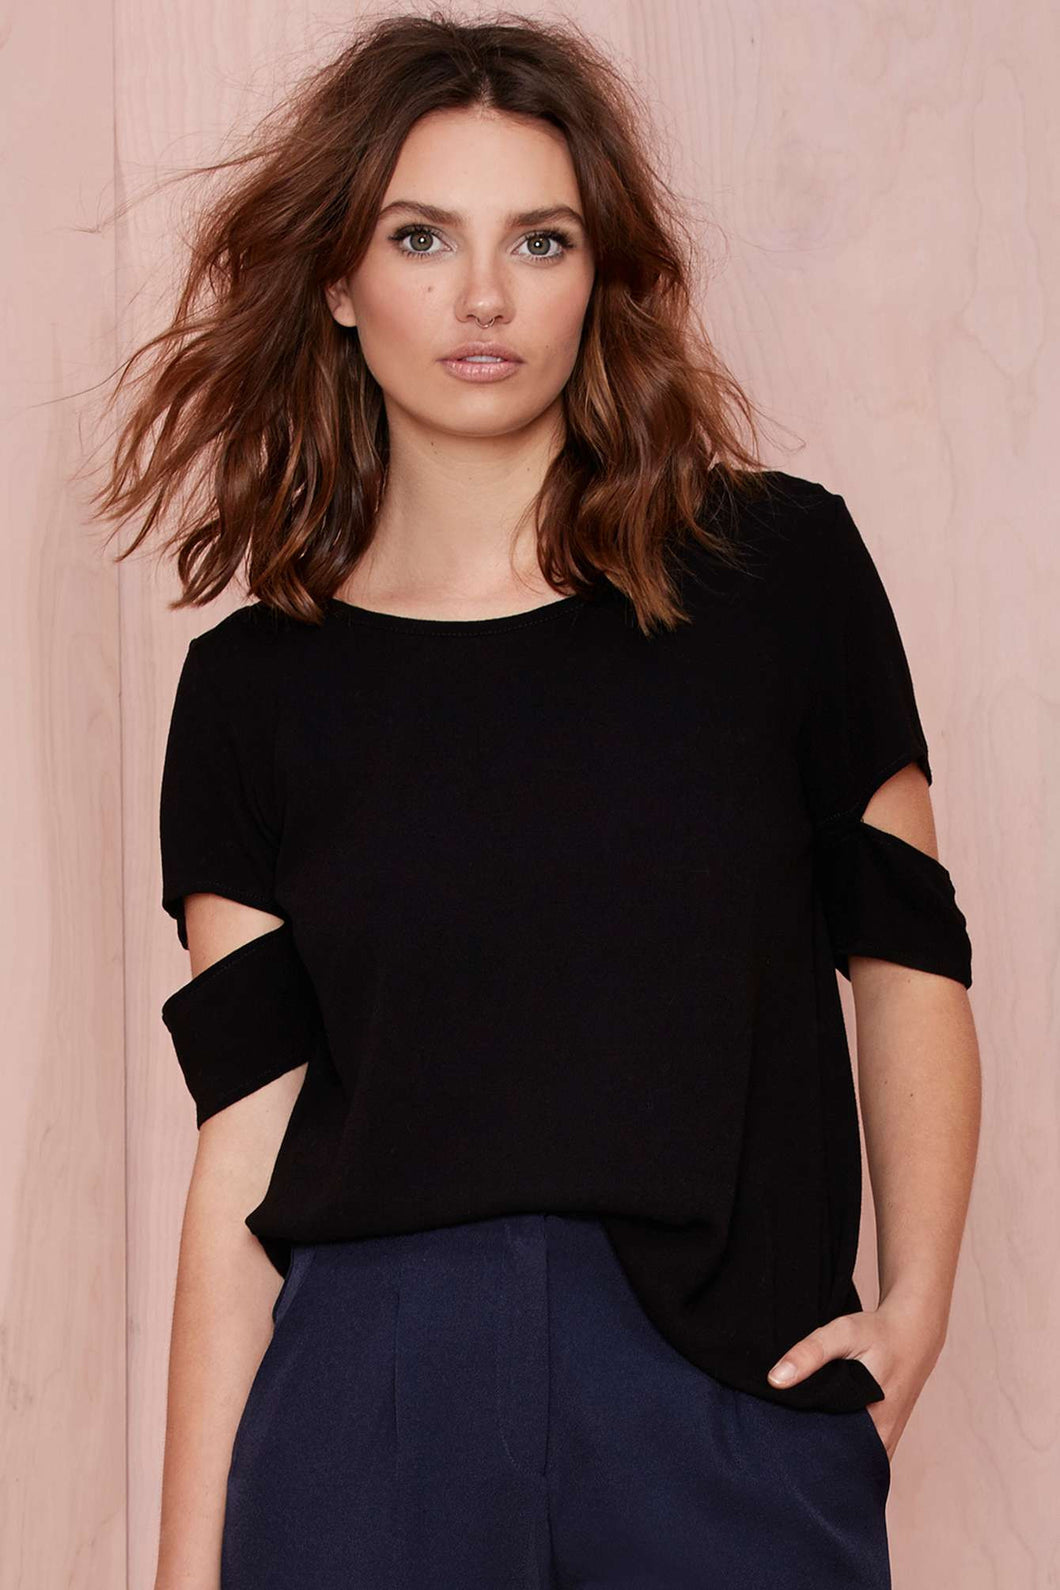 Drama Queen Black Top